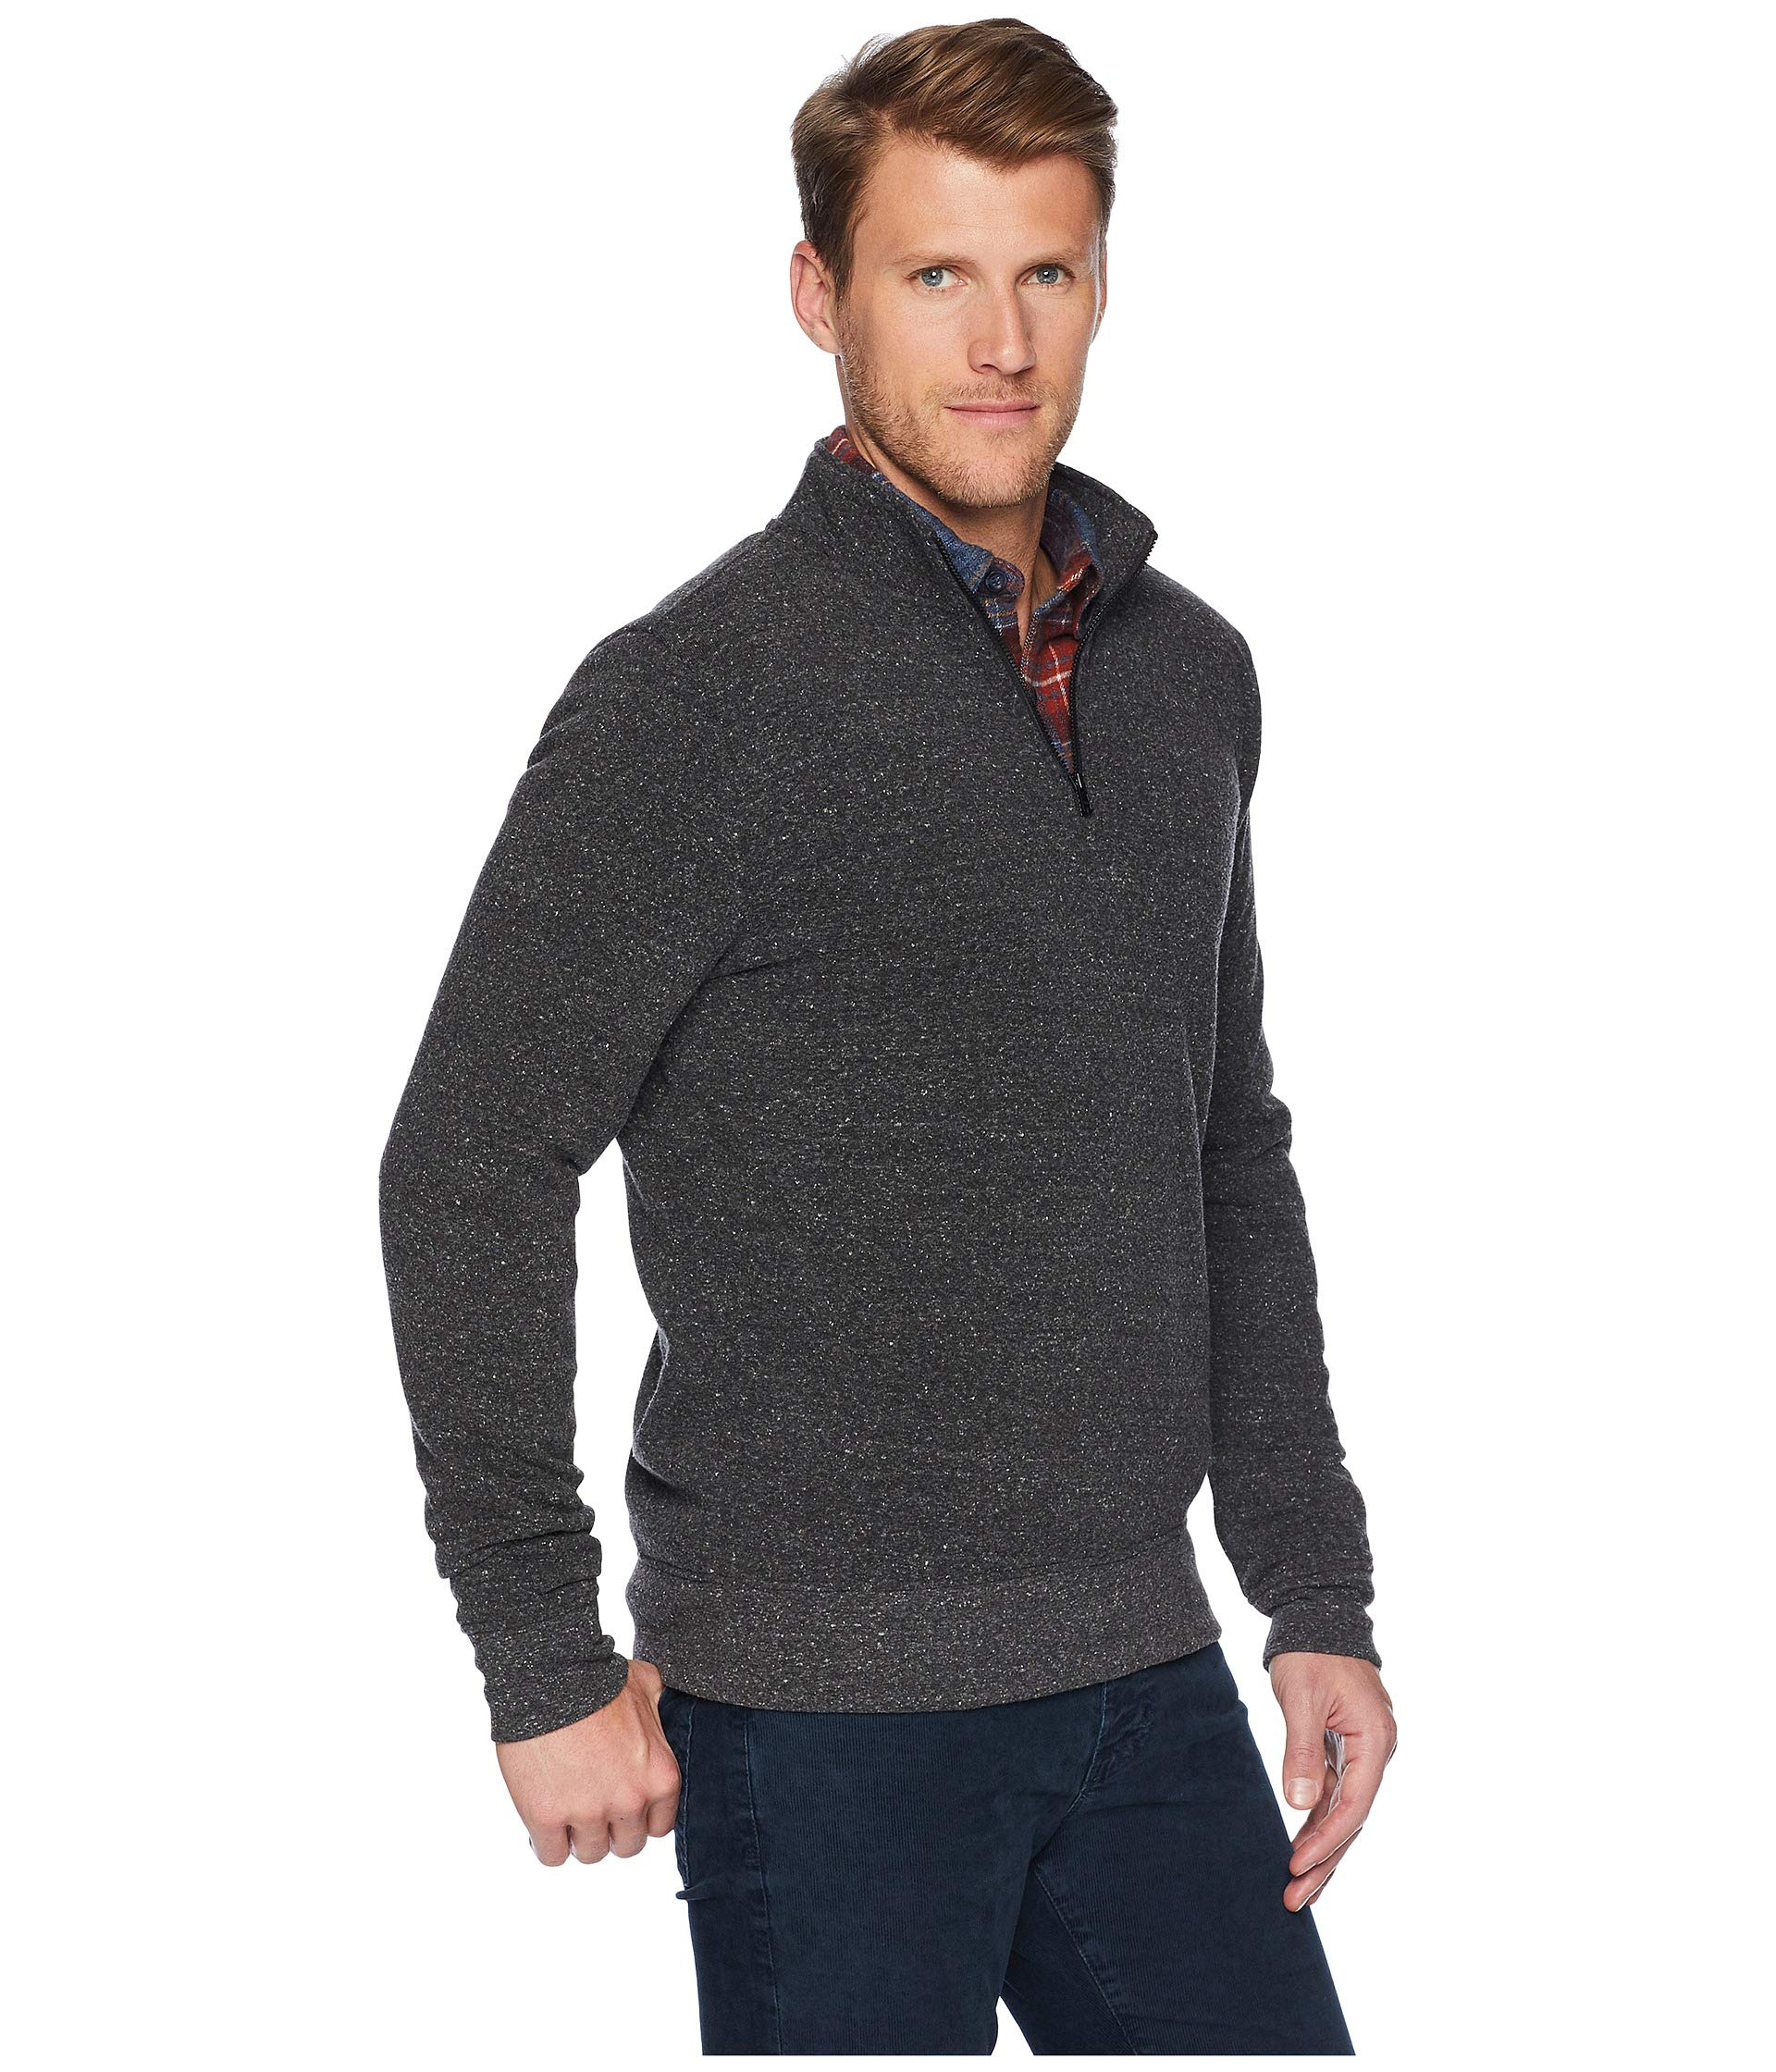 4 Thought Mock 2 Chad Black Neck Zip Threads 1 Heather UCO4xCd